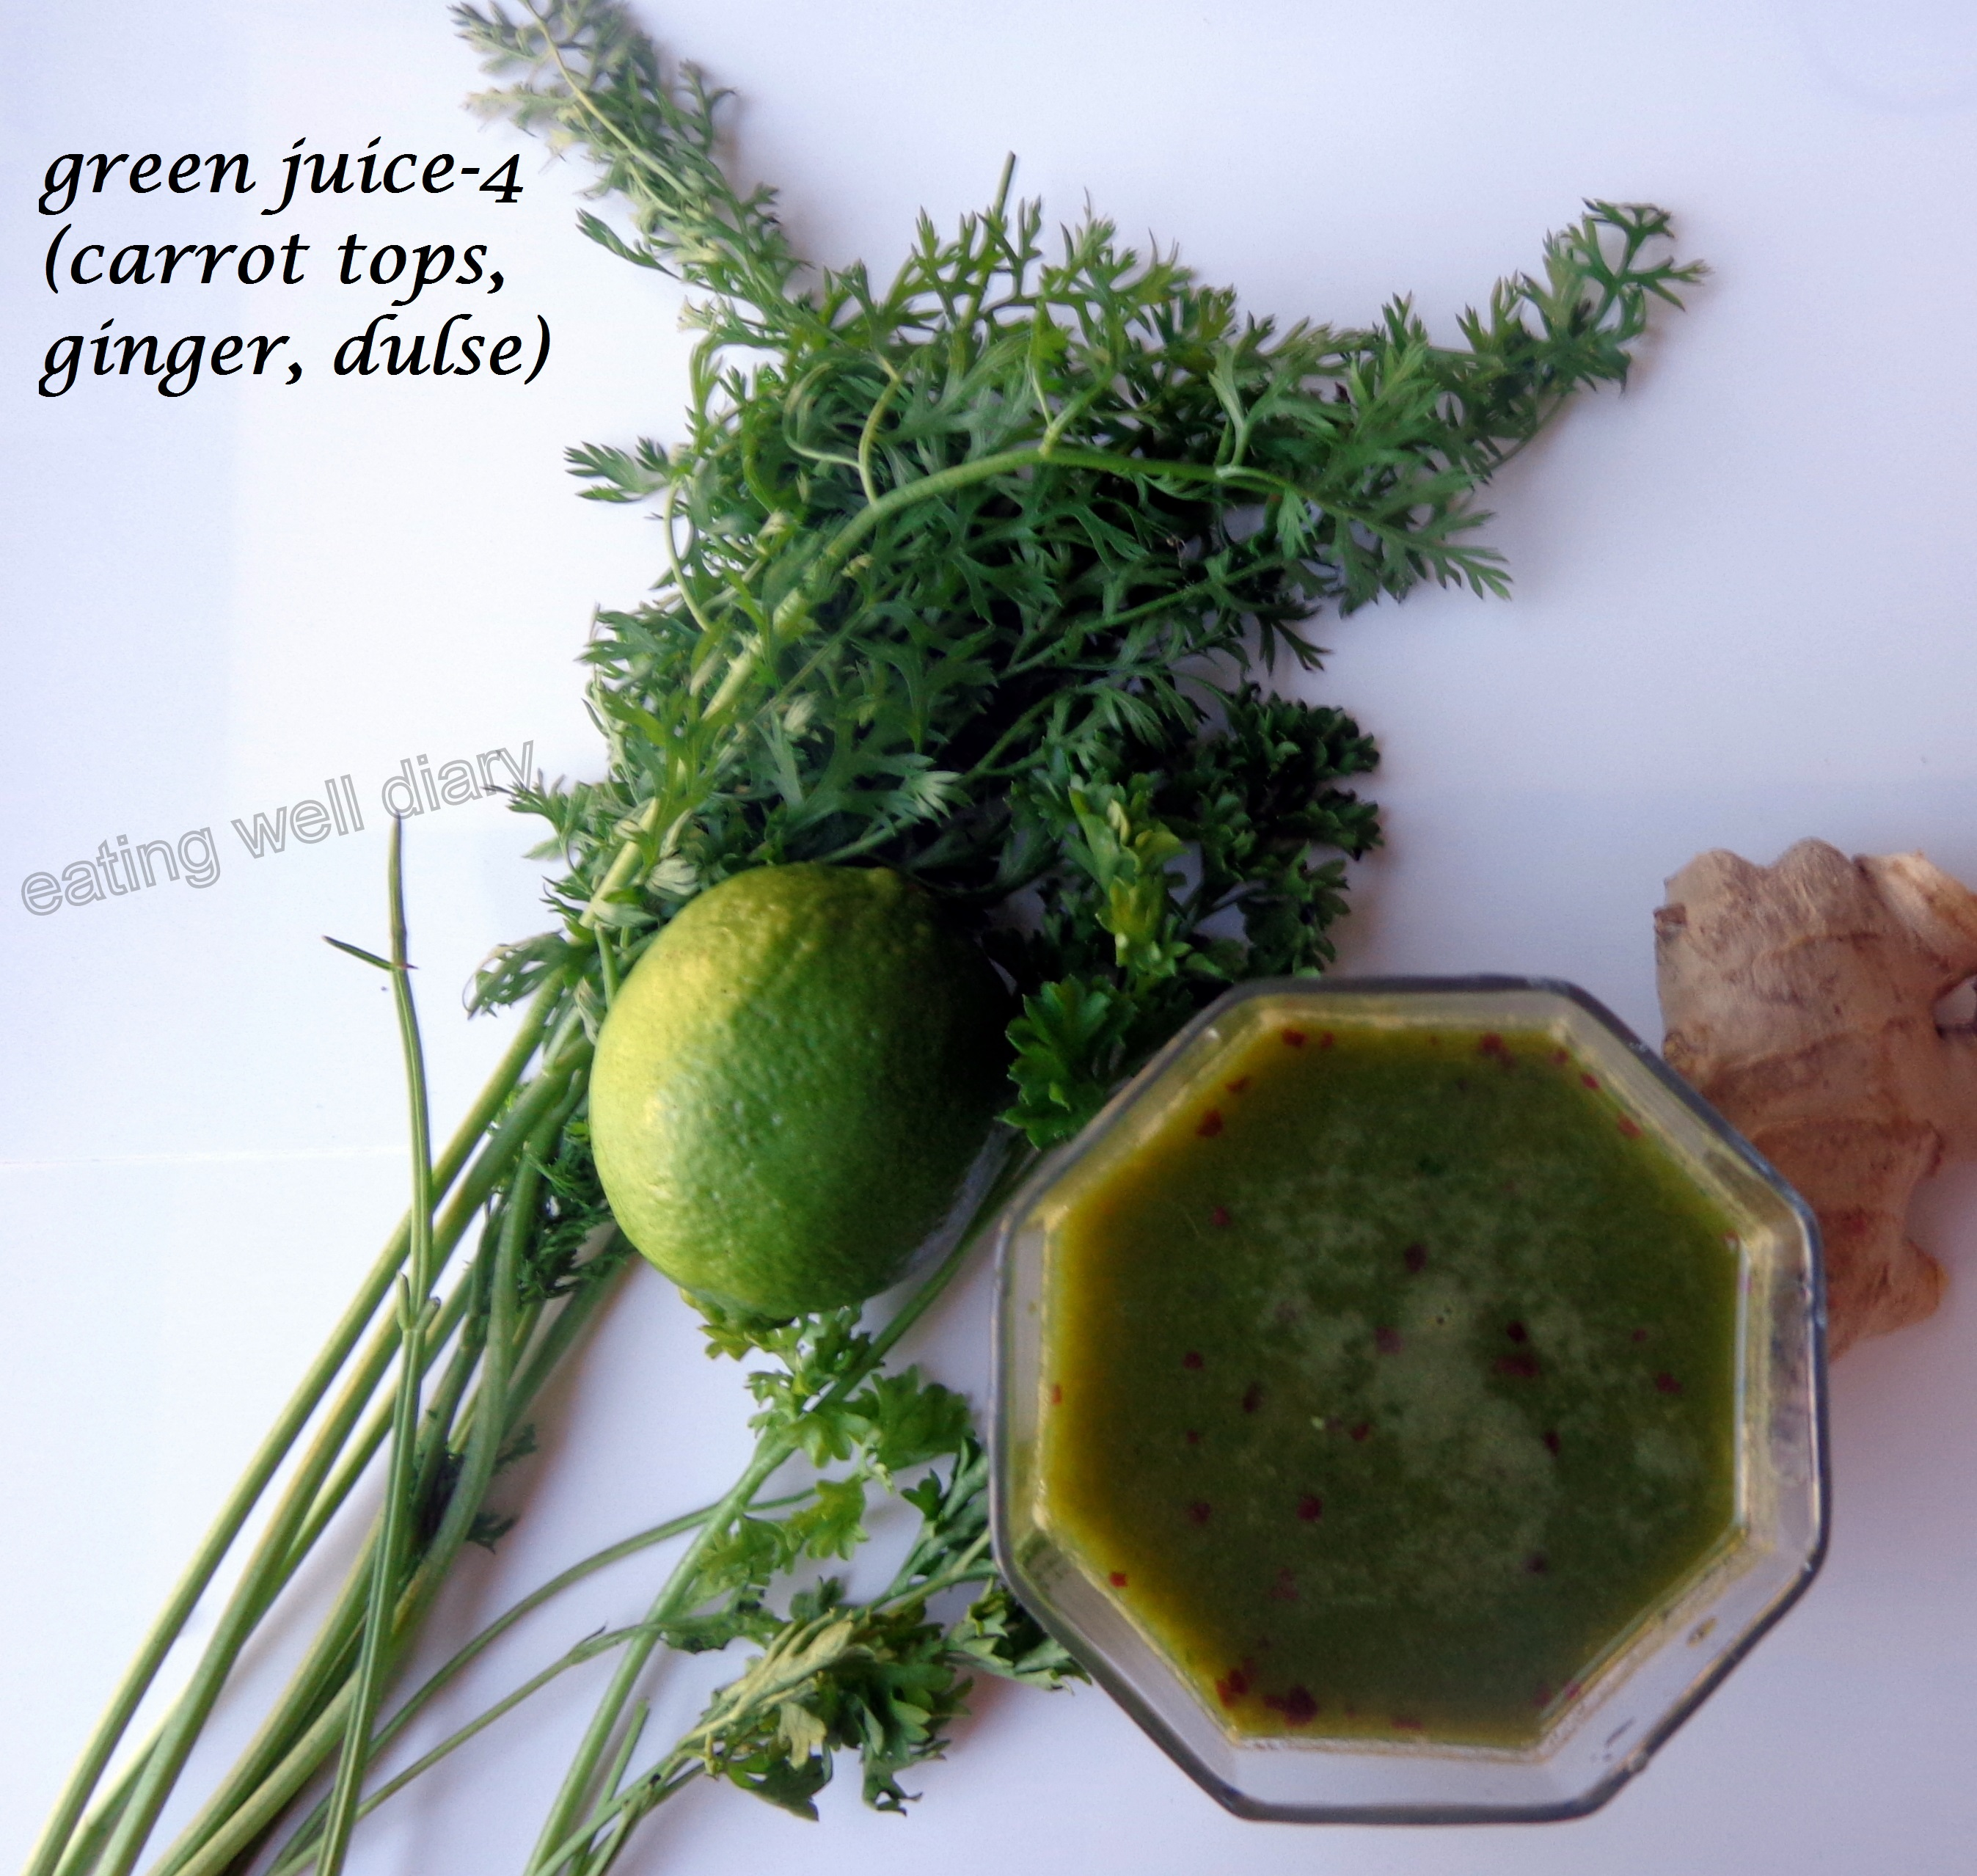 Green juice with carrot tops, ginger and dulse flakes